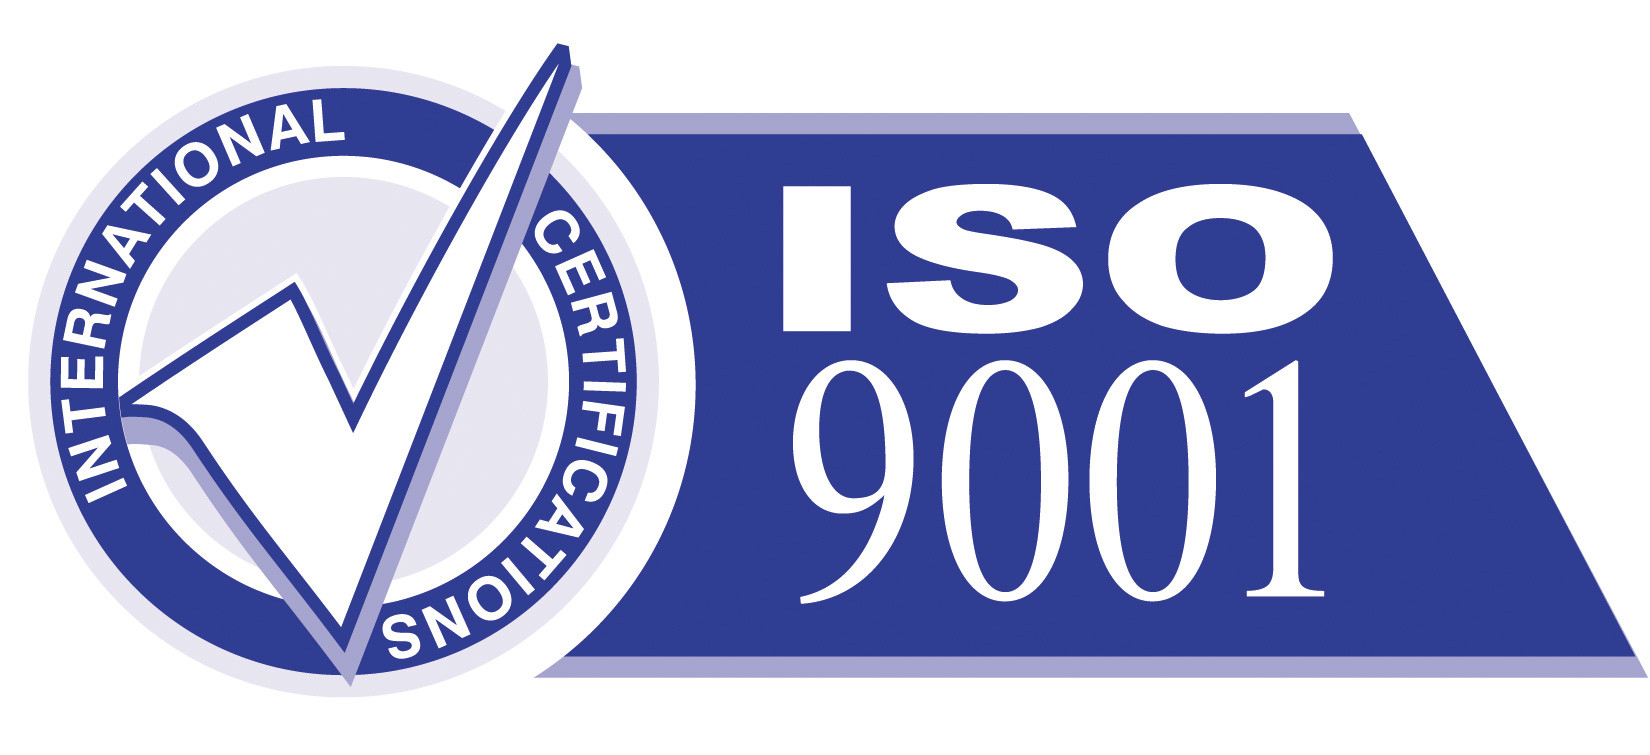 This product is ISO 9001 certified!